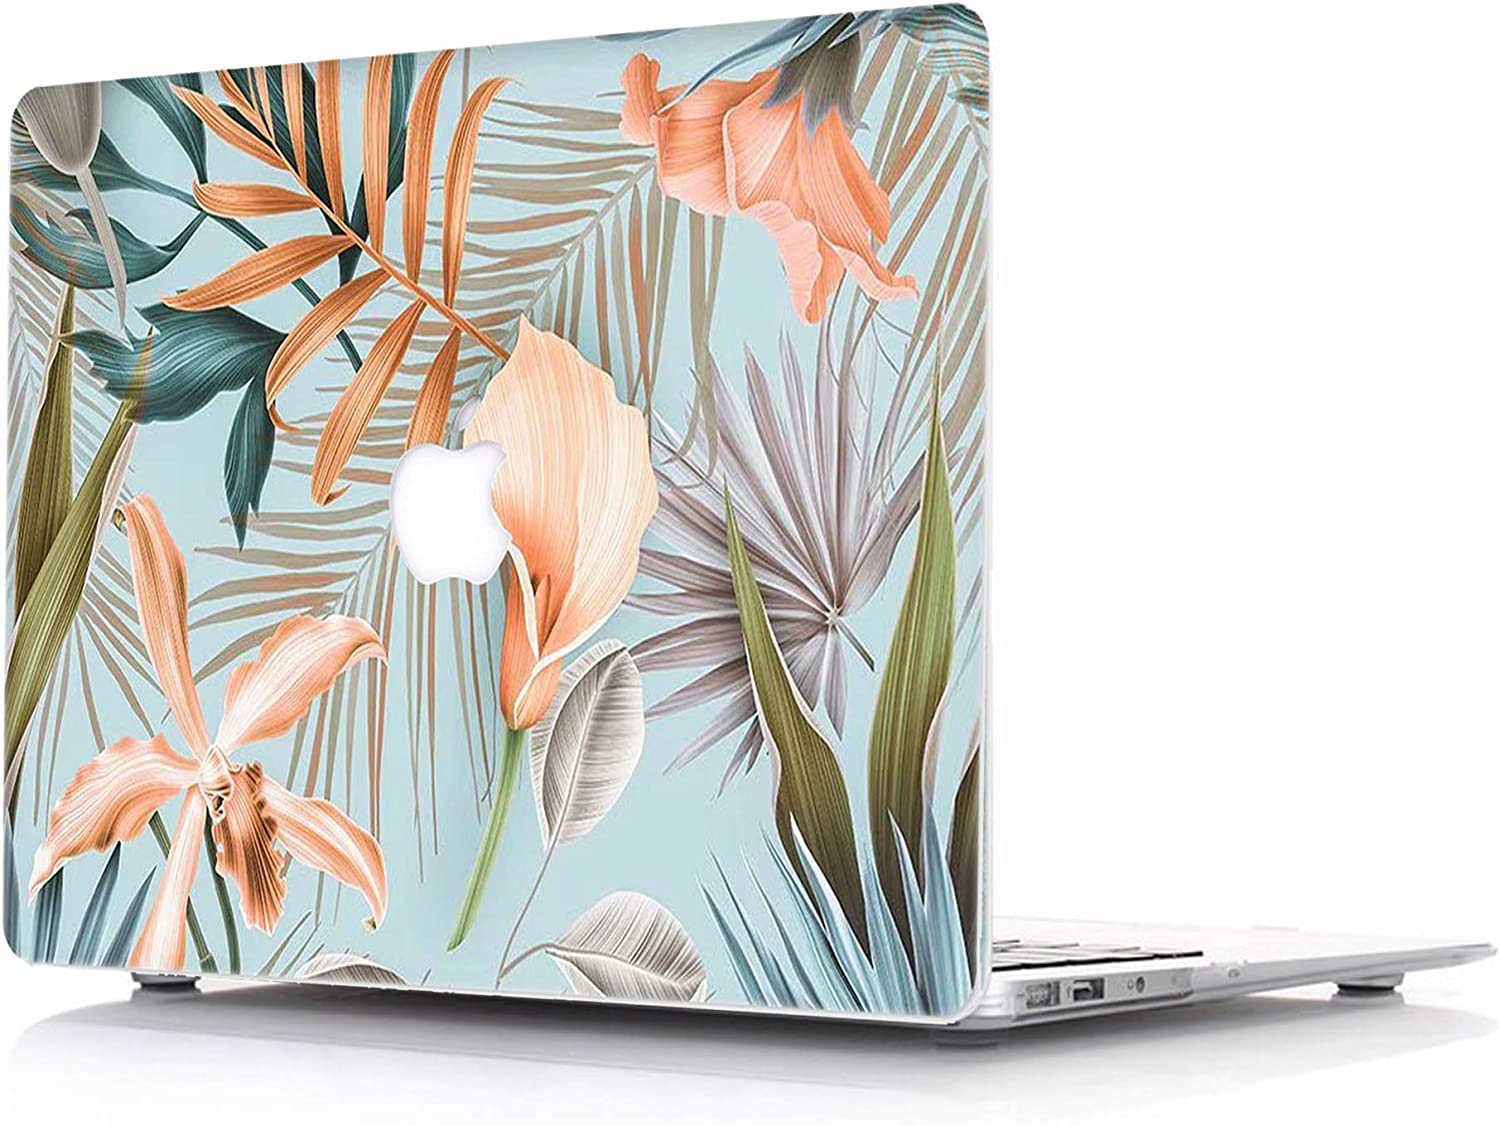 "Case for MacBook Retina 12 inch (Fit Model:A1534) - L2W Protective Hard Case, Plastic Rubber Coated Shell Cover Compatible with MacBook 12"" with Retina Display - Tropical Palms Leaves 08"